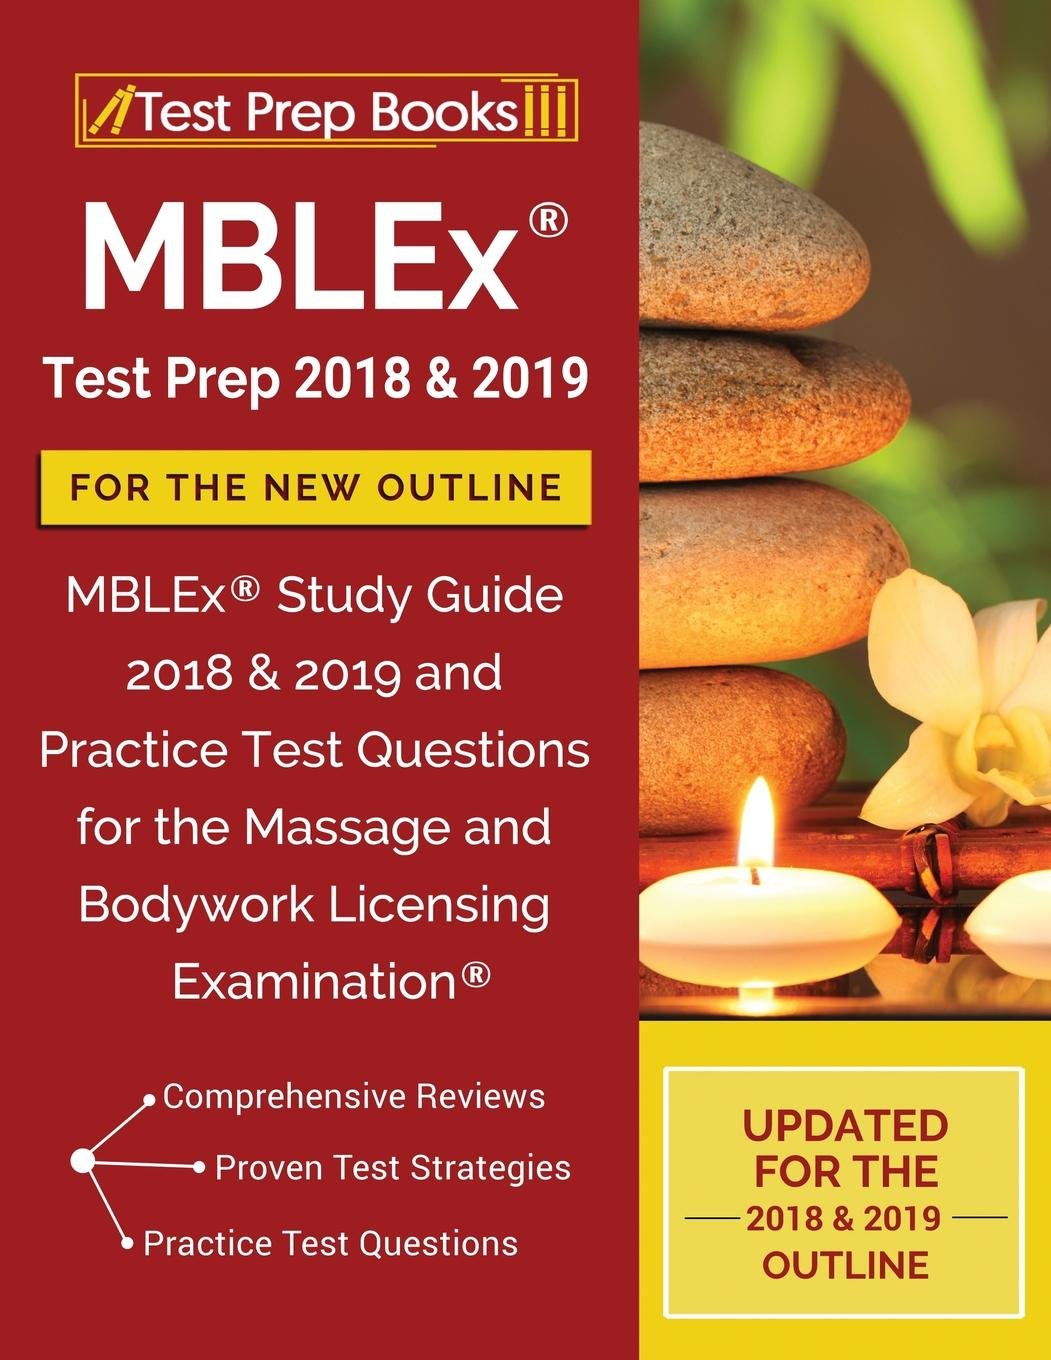 Buy Mblex Test Prep 2018 & 2019 for the New Outline: Mblex Study Guide 2018  & 2019 and Practice Test Questions for the Massage and Bodywork Licensing  ...